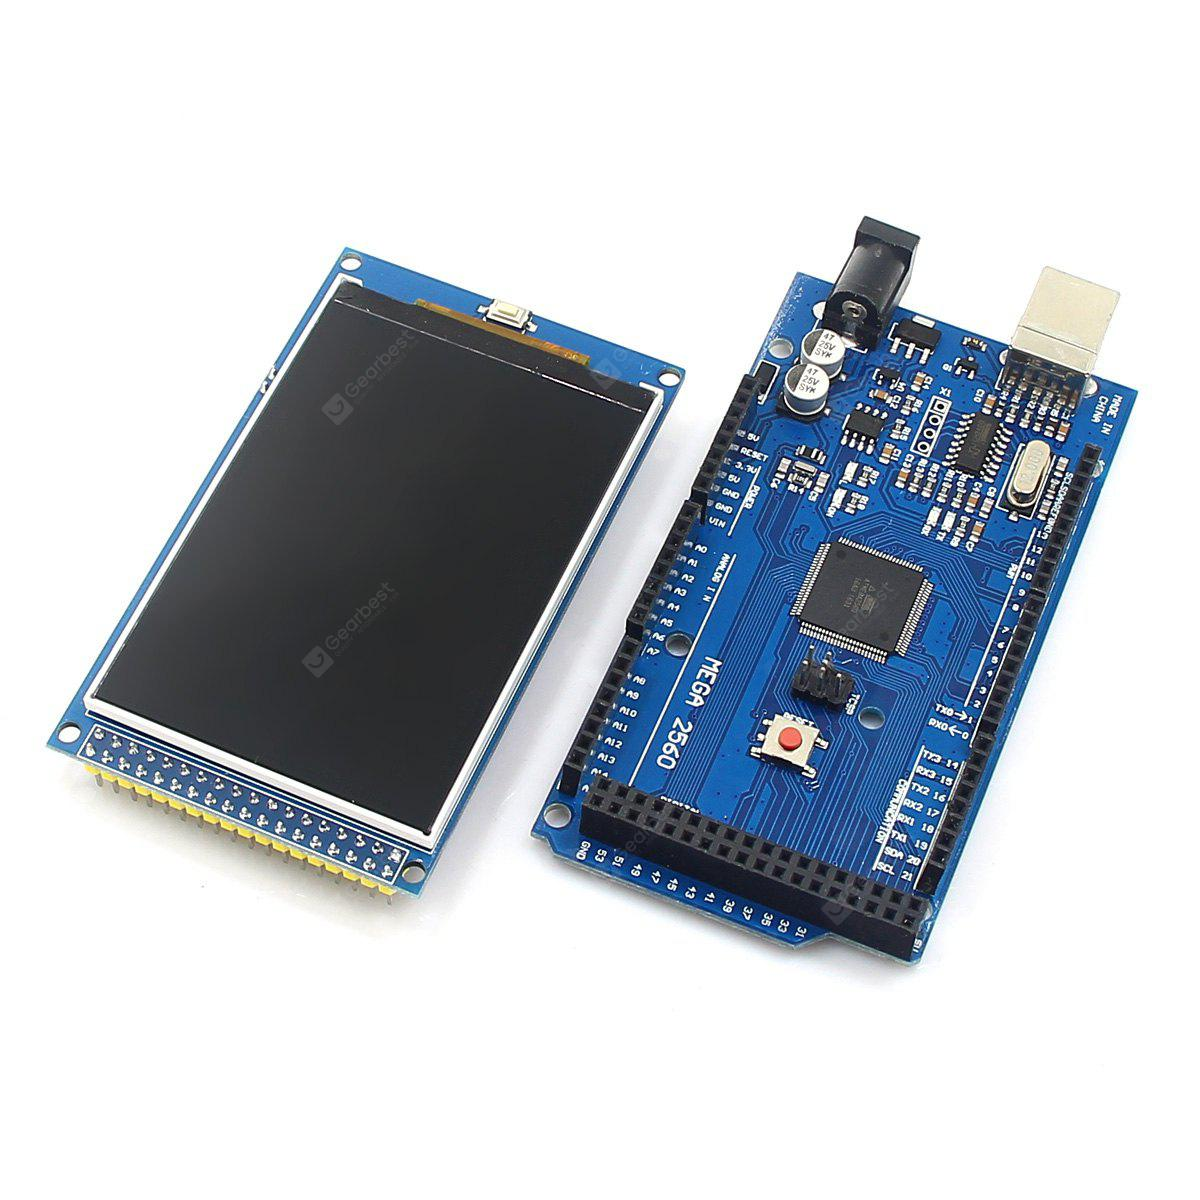 Cool Electronic Toys >> Arduino Mega 2560 R3 Development Board + 3.2 inch TFT IPS LCD ( 480 x 320 262K Color Full ...